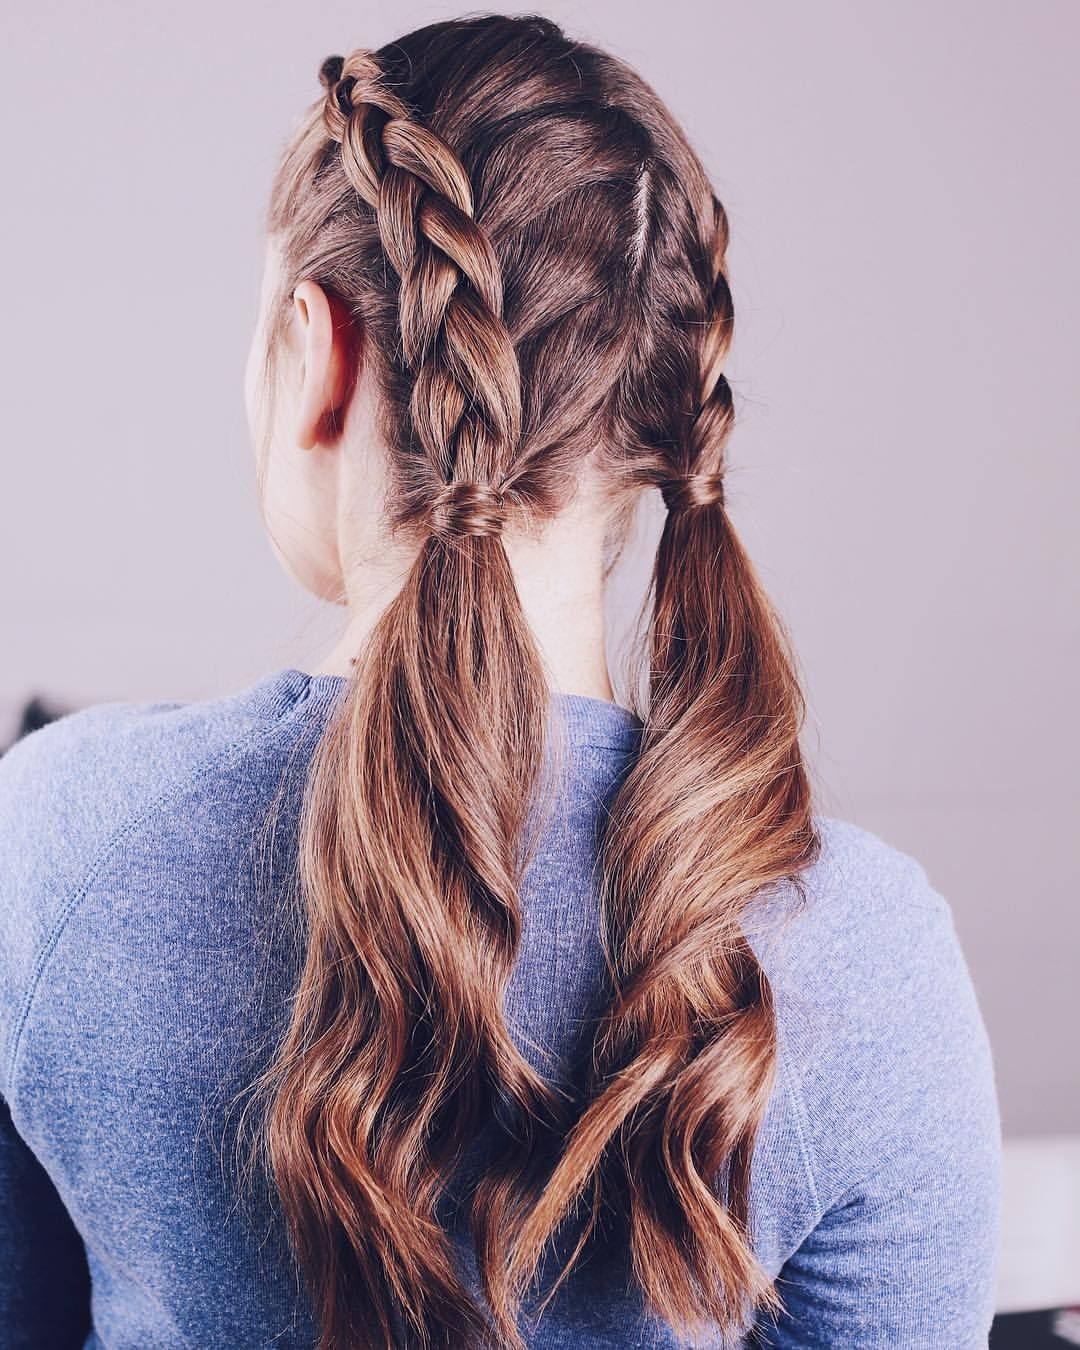 Pigtail Braids Instagram Dutch Pigtail Braids Pigtail Braids Hair Styles